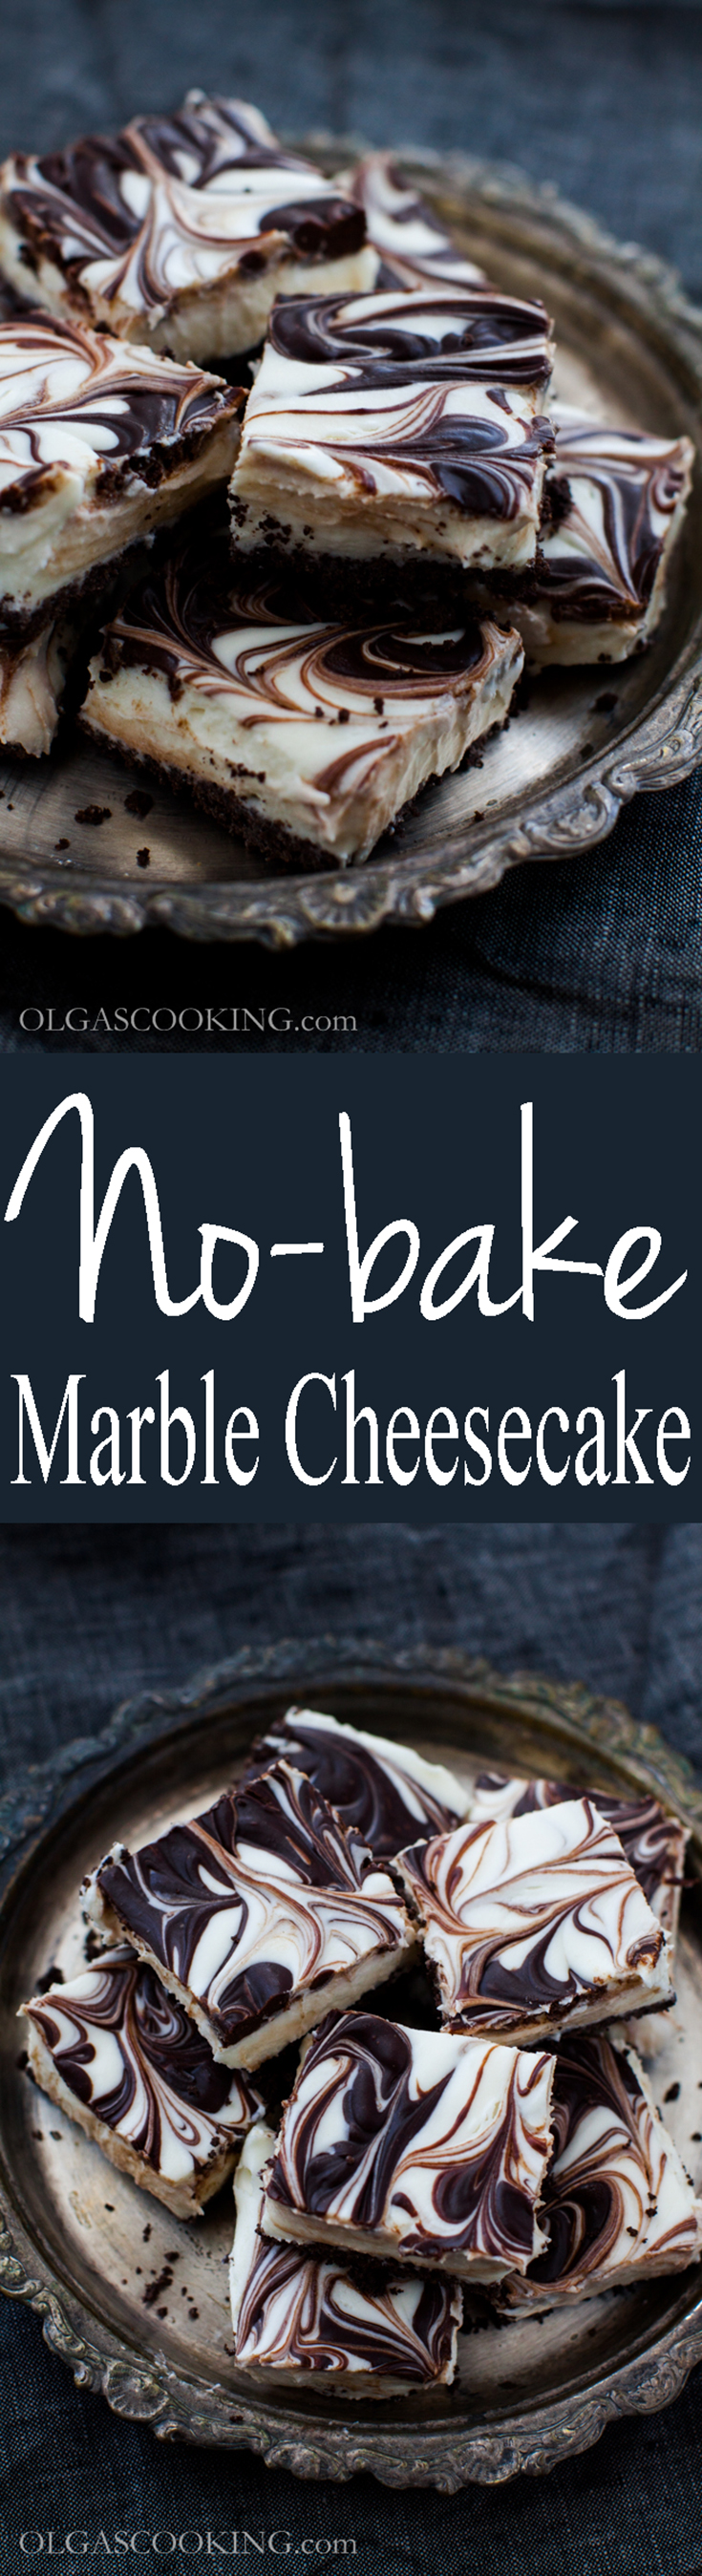 No-bake Marble Cheesecake Bites